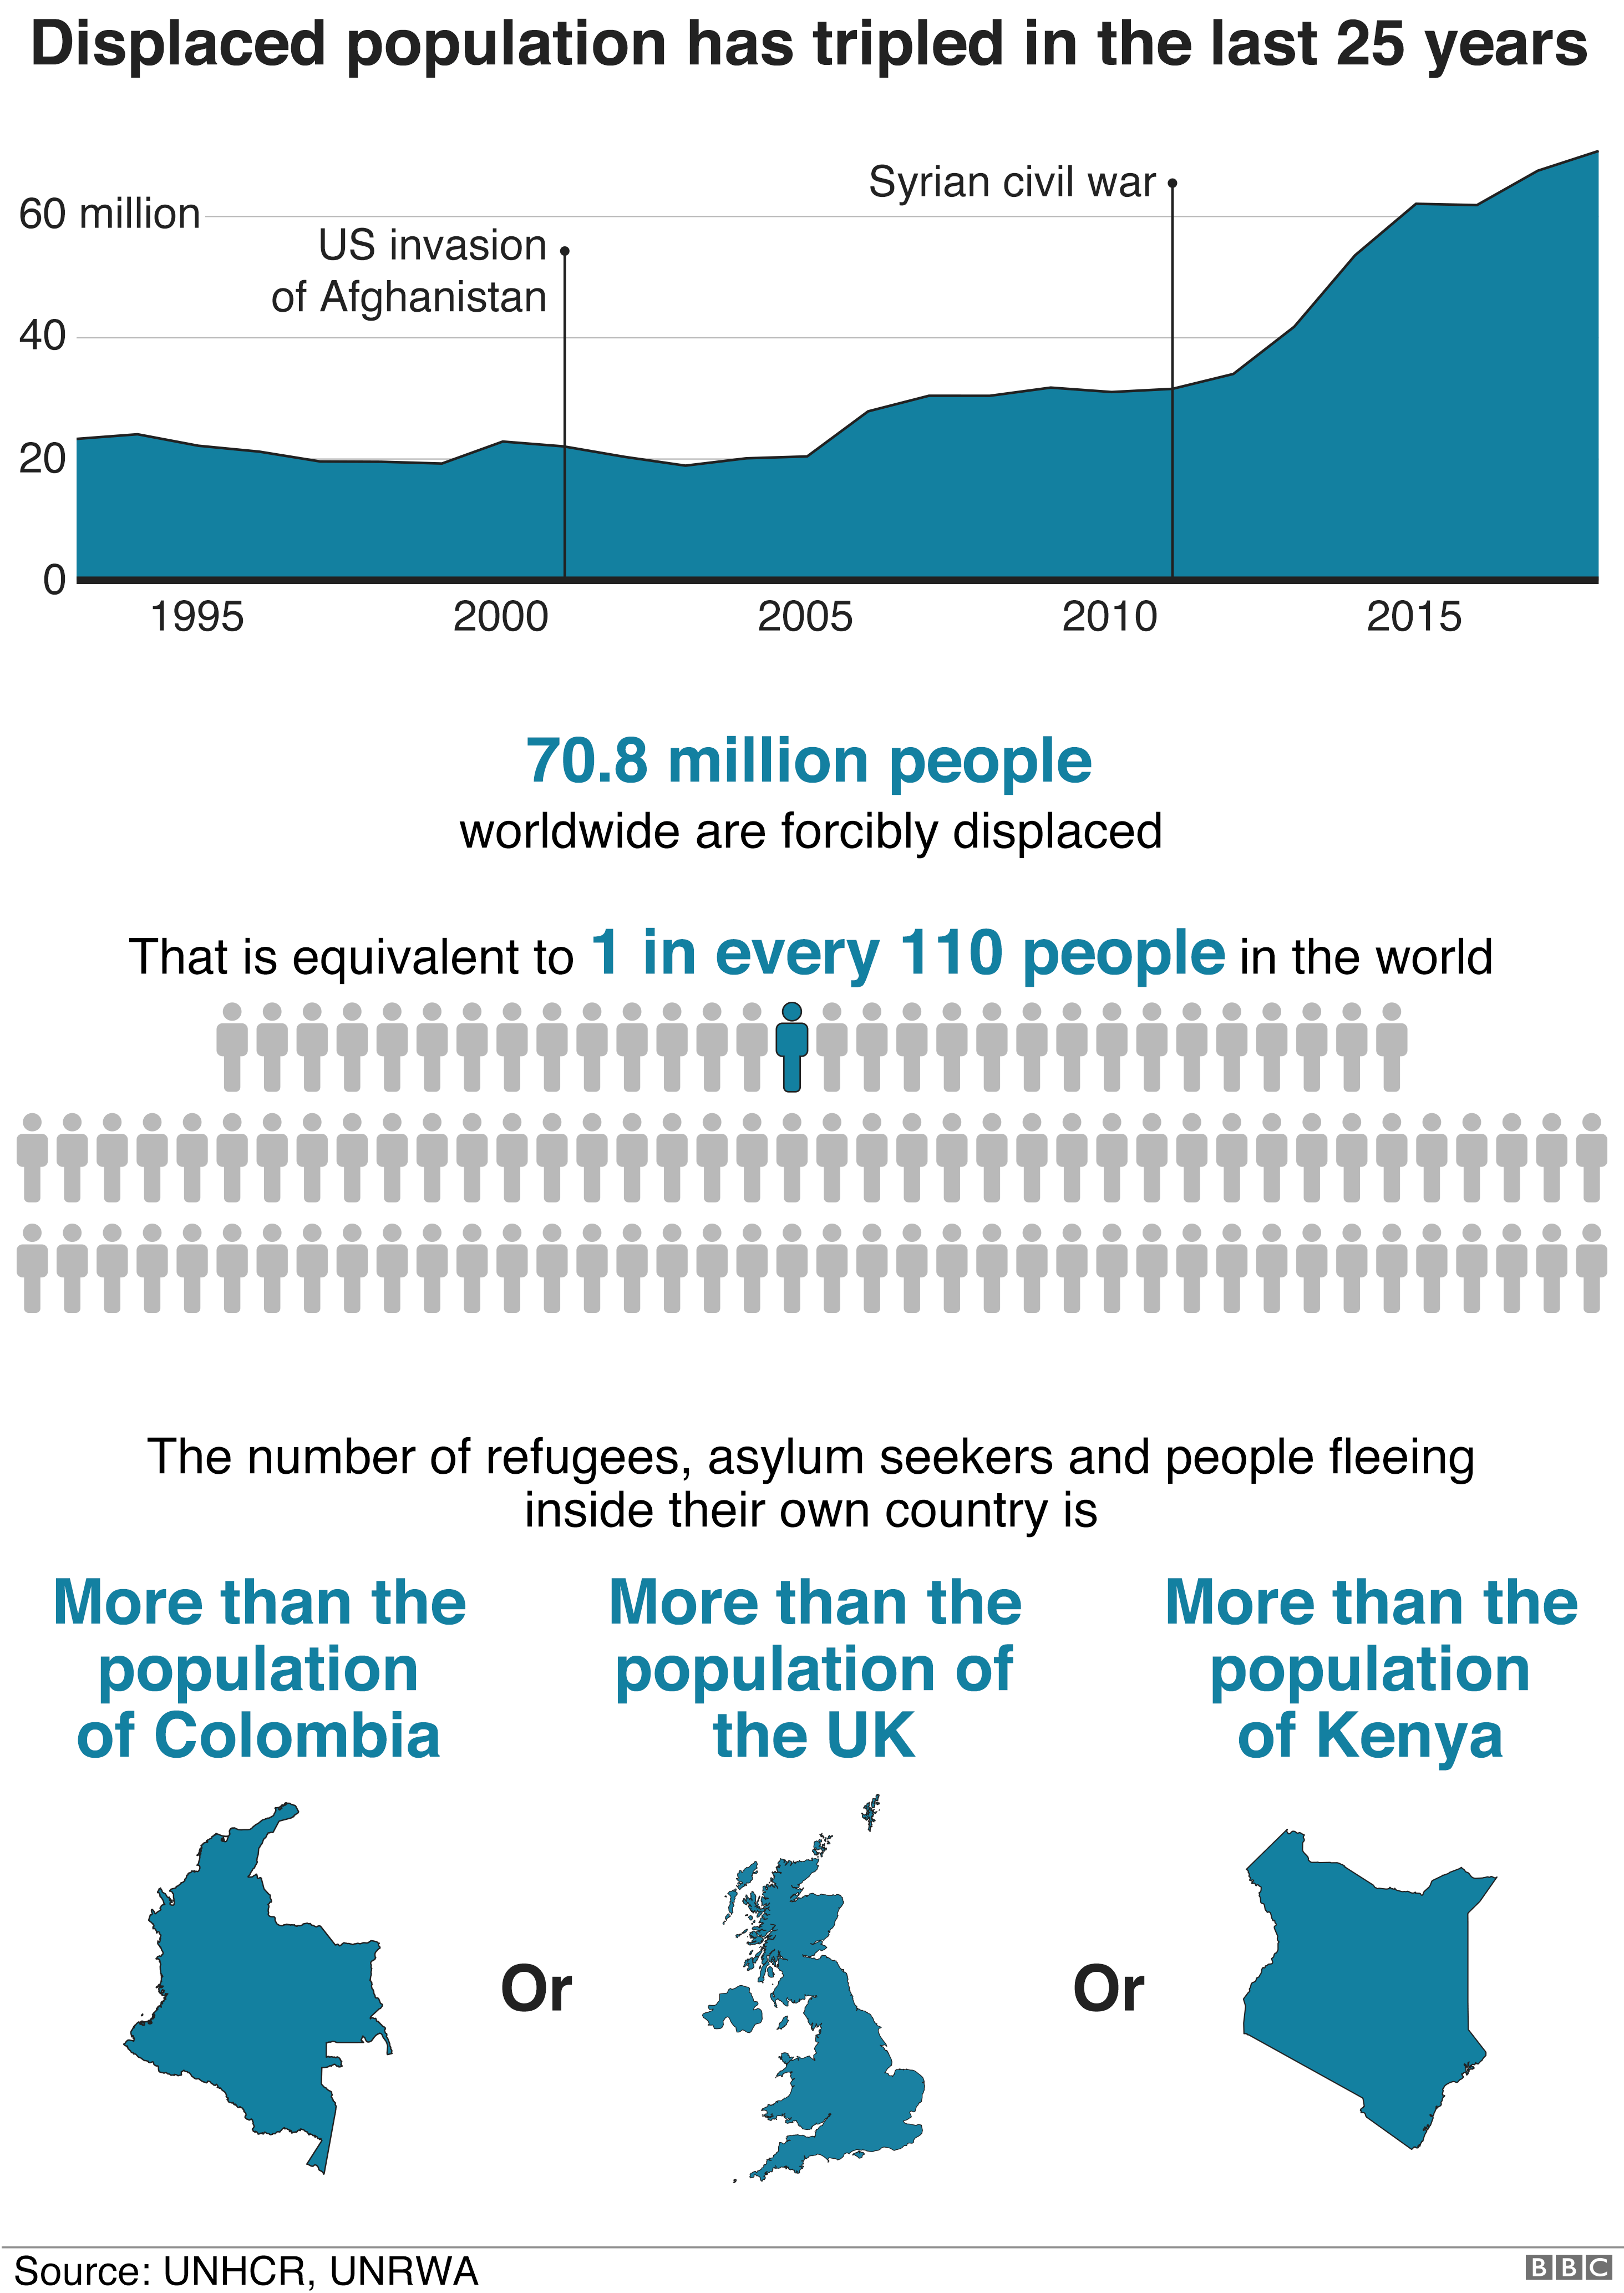 Graphic showing how the number of displaced people globally has tripled in the last 25 years